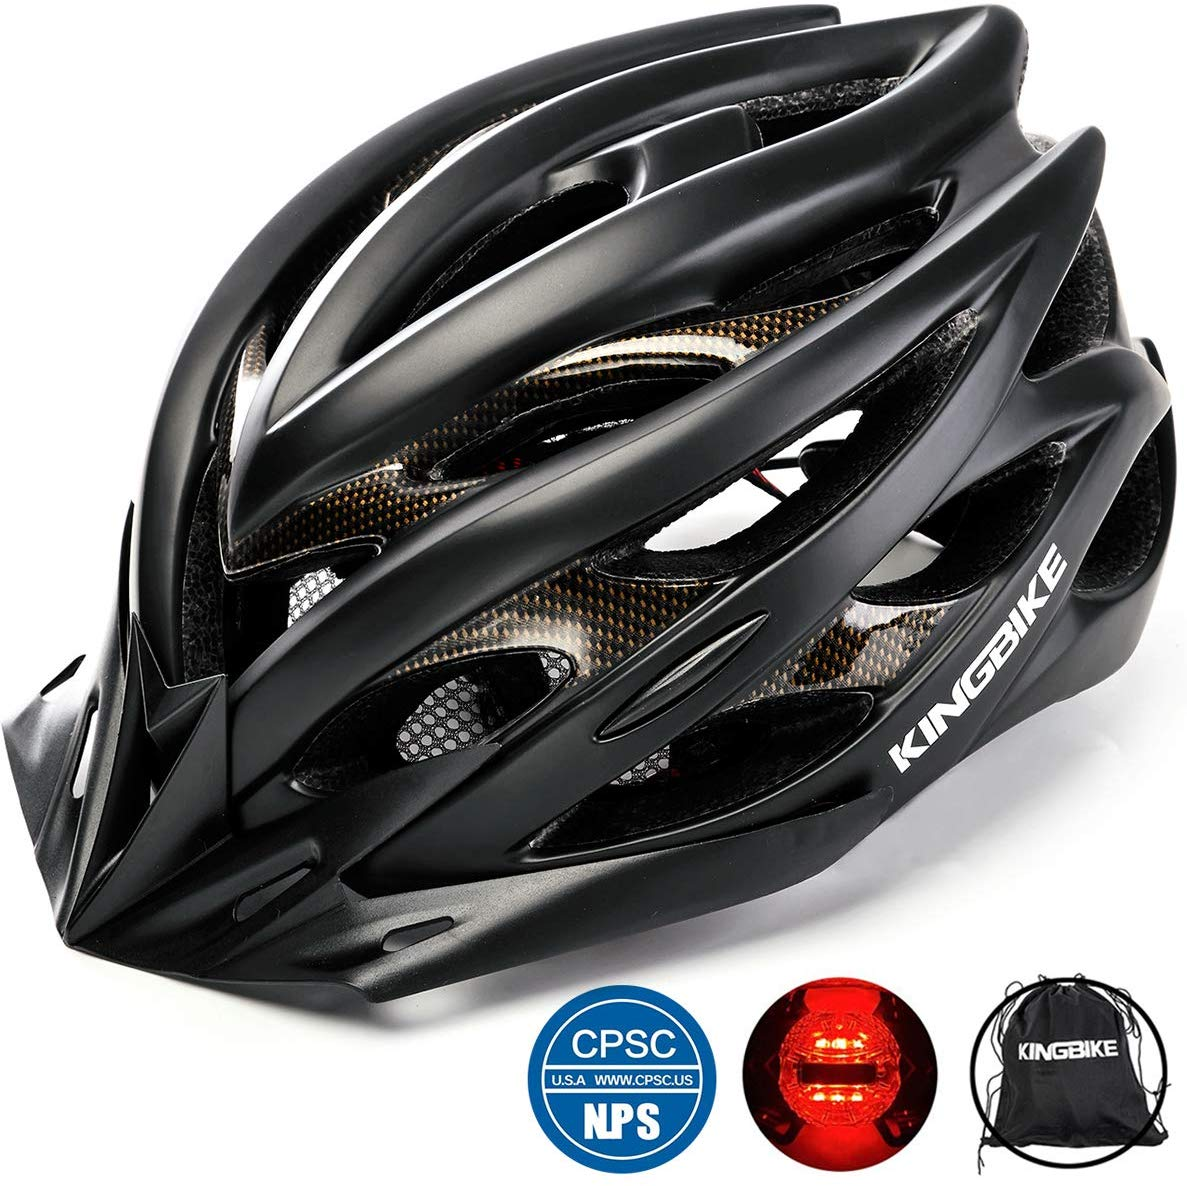 KINGBIKE Ultralight Helmet.